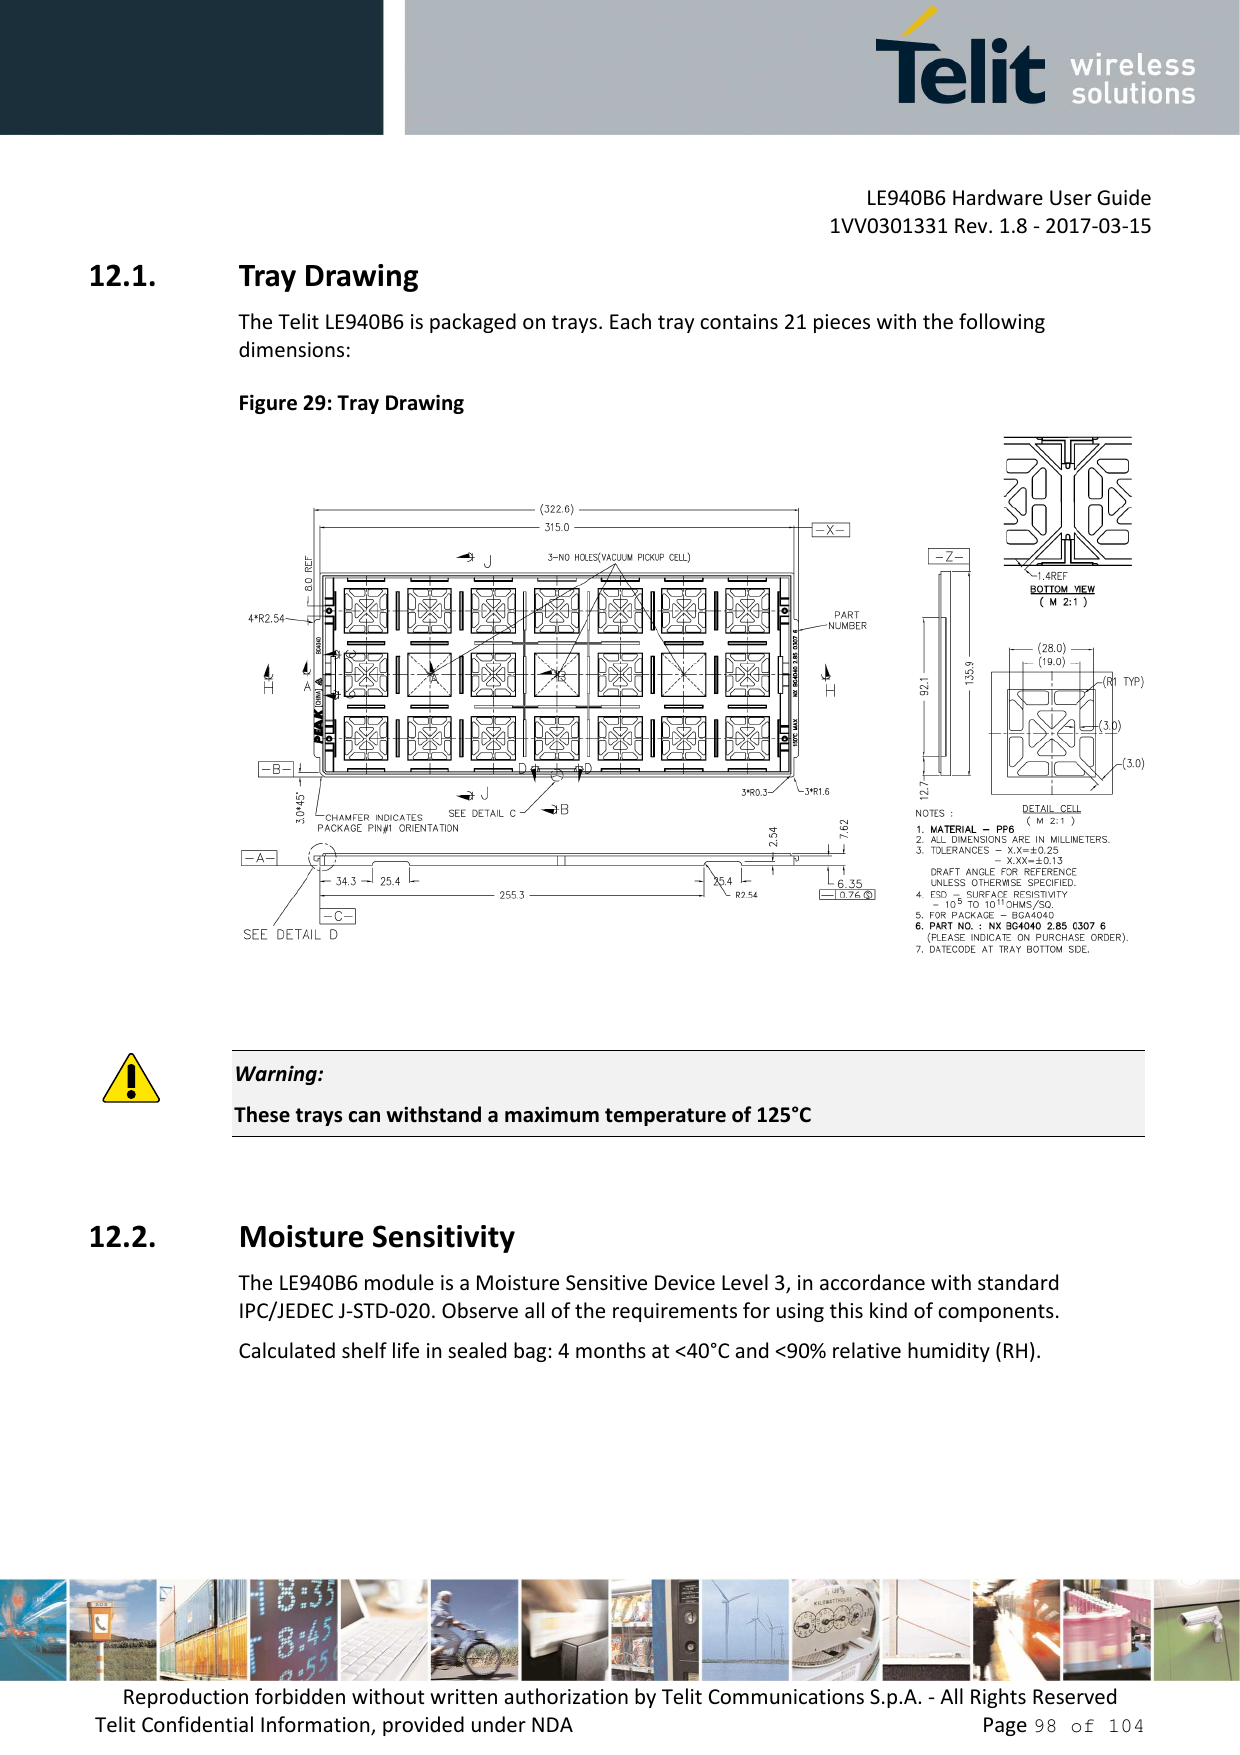 LE940B6 Hardware User Guide     1VV0301331 Rev. 1.8 - 2017-03-15 Reproduction forbidden without written authorization by Telit Communications S.p.A. - All Rights Reserved Telit Confidential Information, provided under NDA                 Page 98 of 104 12.1. Tray Drawing The Telit LE940B6 is packaged on trays. Each tray contains 21 pieces with the following dimensions: Figure 29: Tray Drawing    Warning: These trays can withstand a maximum temperature of 125°C  12.2. Moisture Sensitivity The LE940B6 module is a Moisture Sensitive Device Level 3, in accordance with standard IPC/JEDEC J-STD-020. Observe all of the requirements for using this kind of components. Calculated shelf life in sealed bag: 4 months at <40°C and <90% relative humidity (RH).